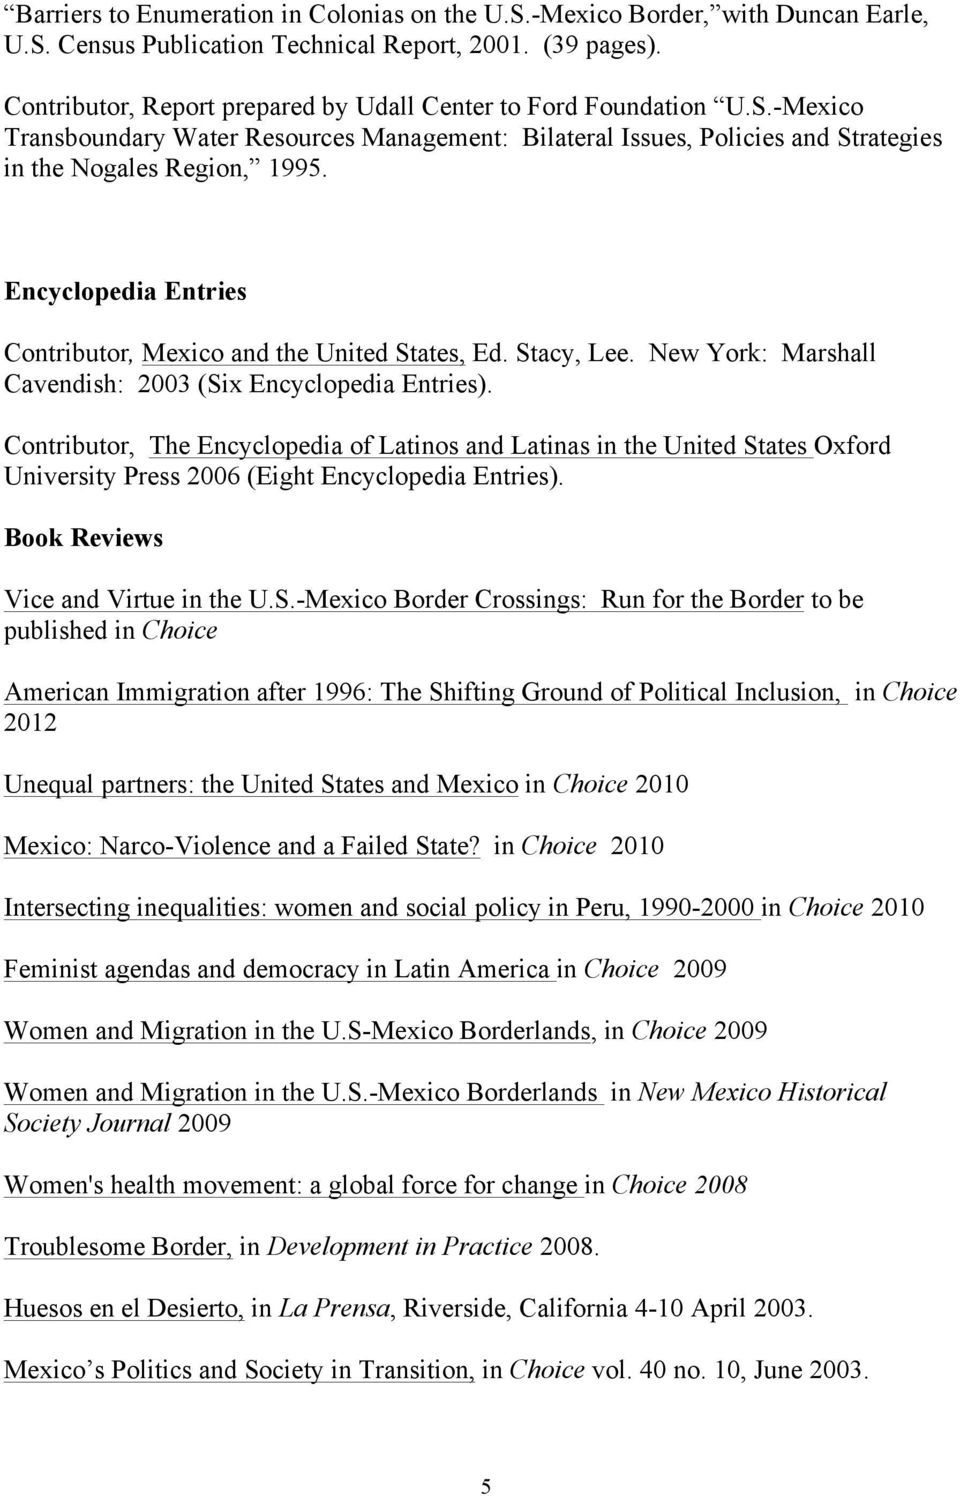 Encyclopedia Entries Contributor, Mexico and the United States, Ed. Stacy, Lee. New York: Marshall Cavendish: 2003 (Six Encyclopedia Entries).